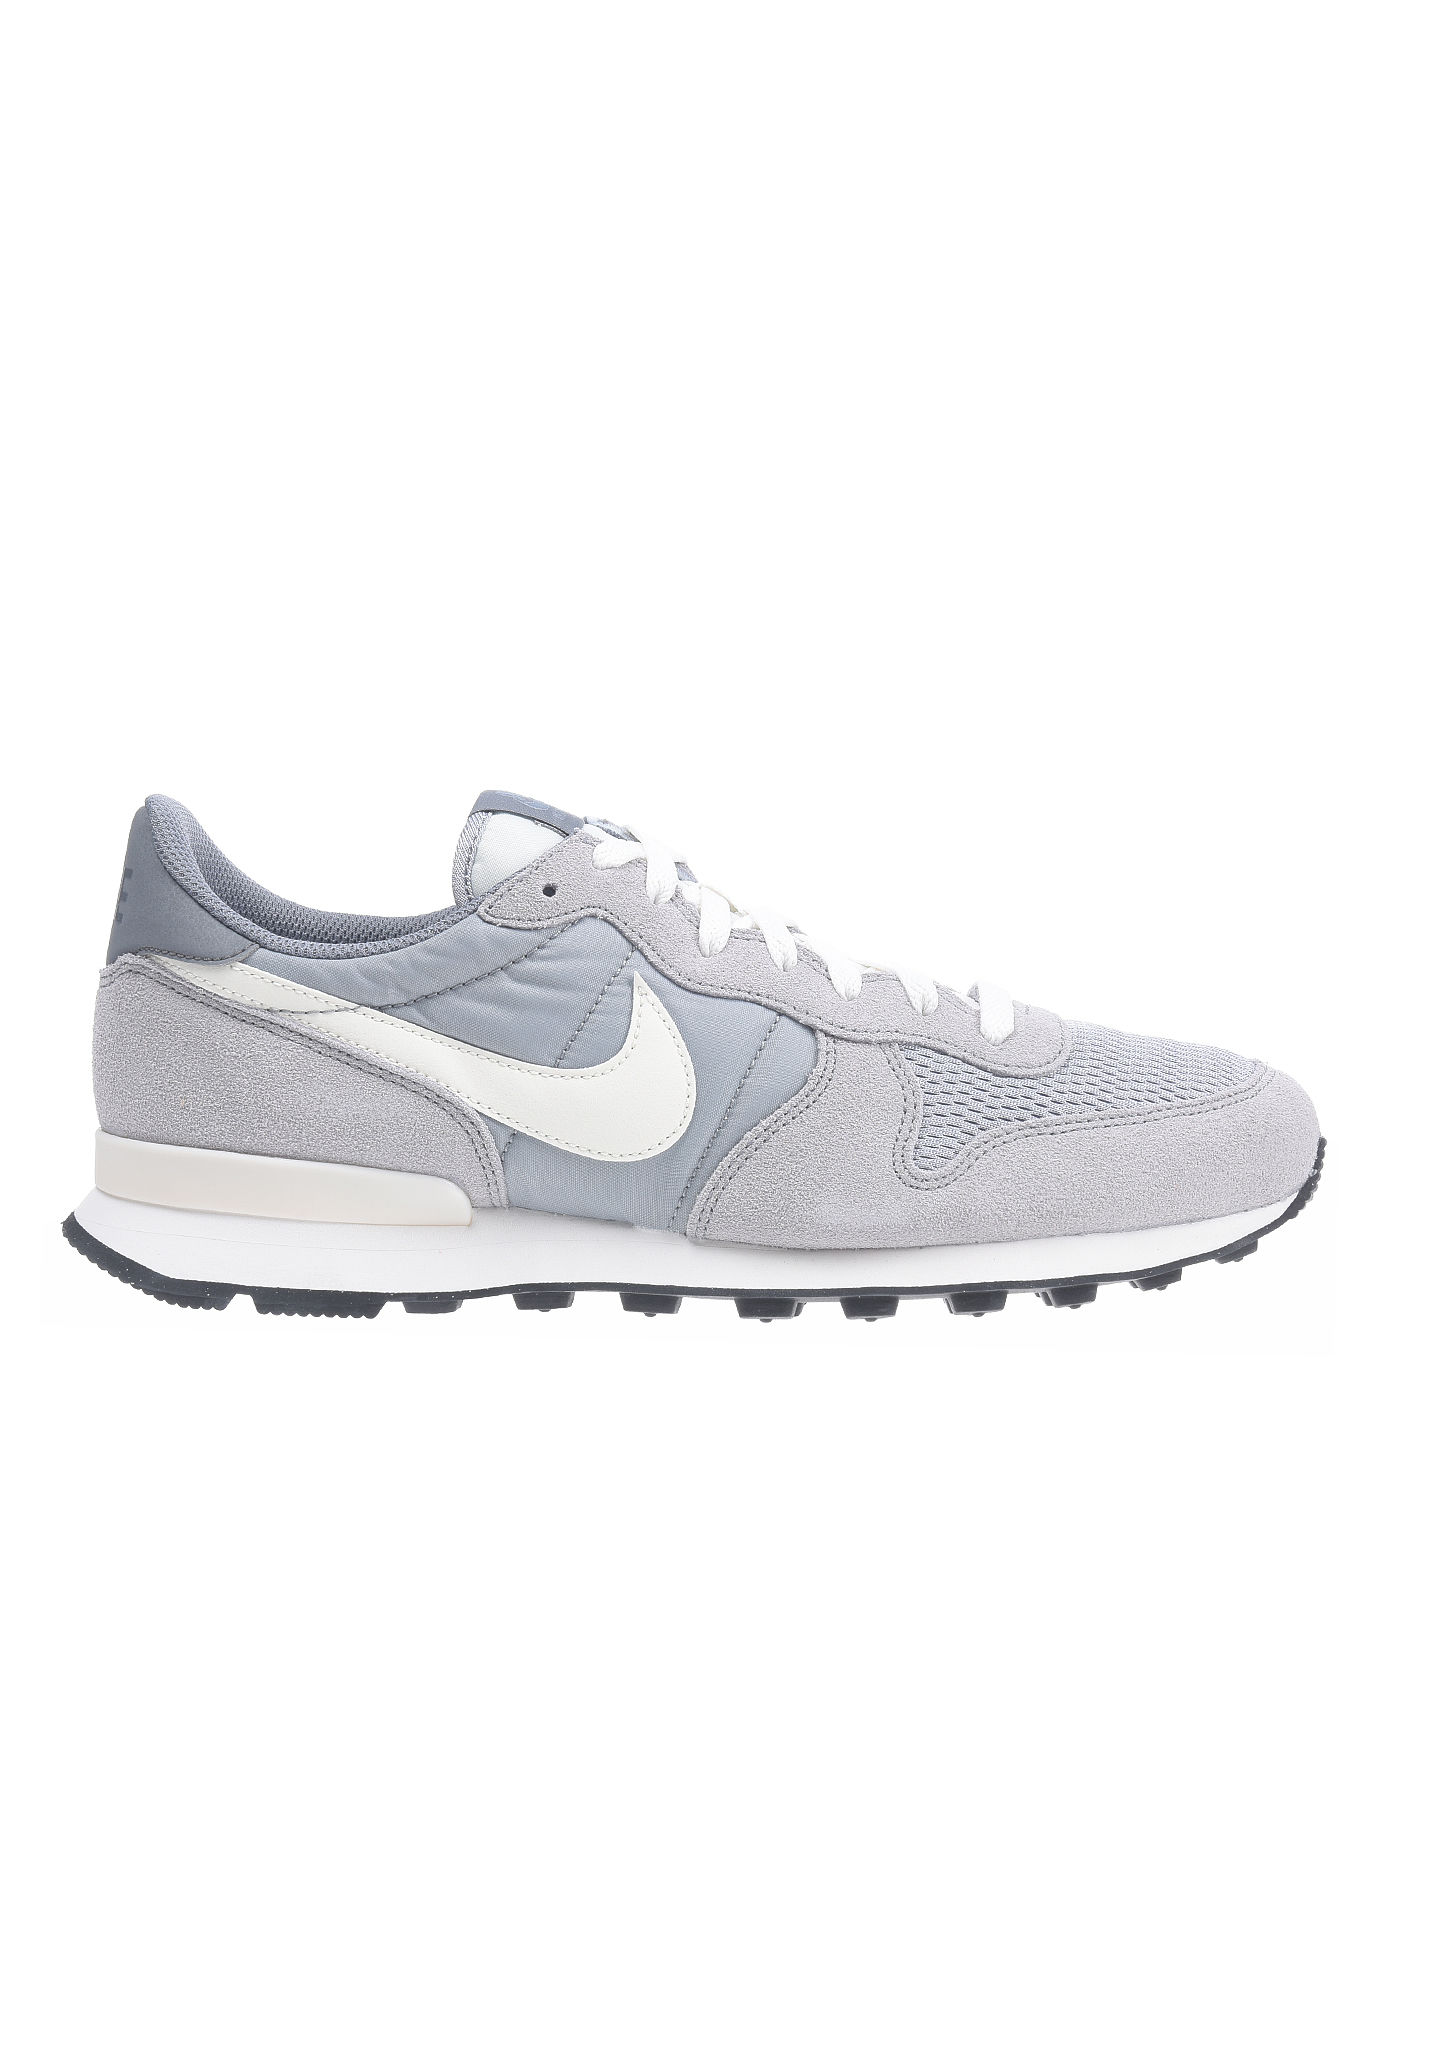 Nike Gris Nike Sneakers Une Internationaliste j7ygHORG8